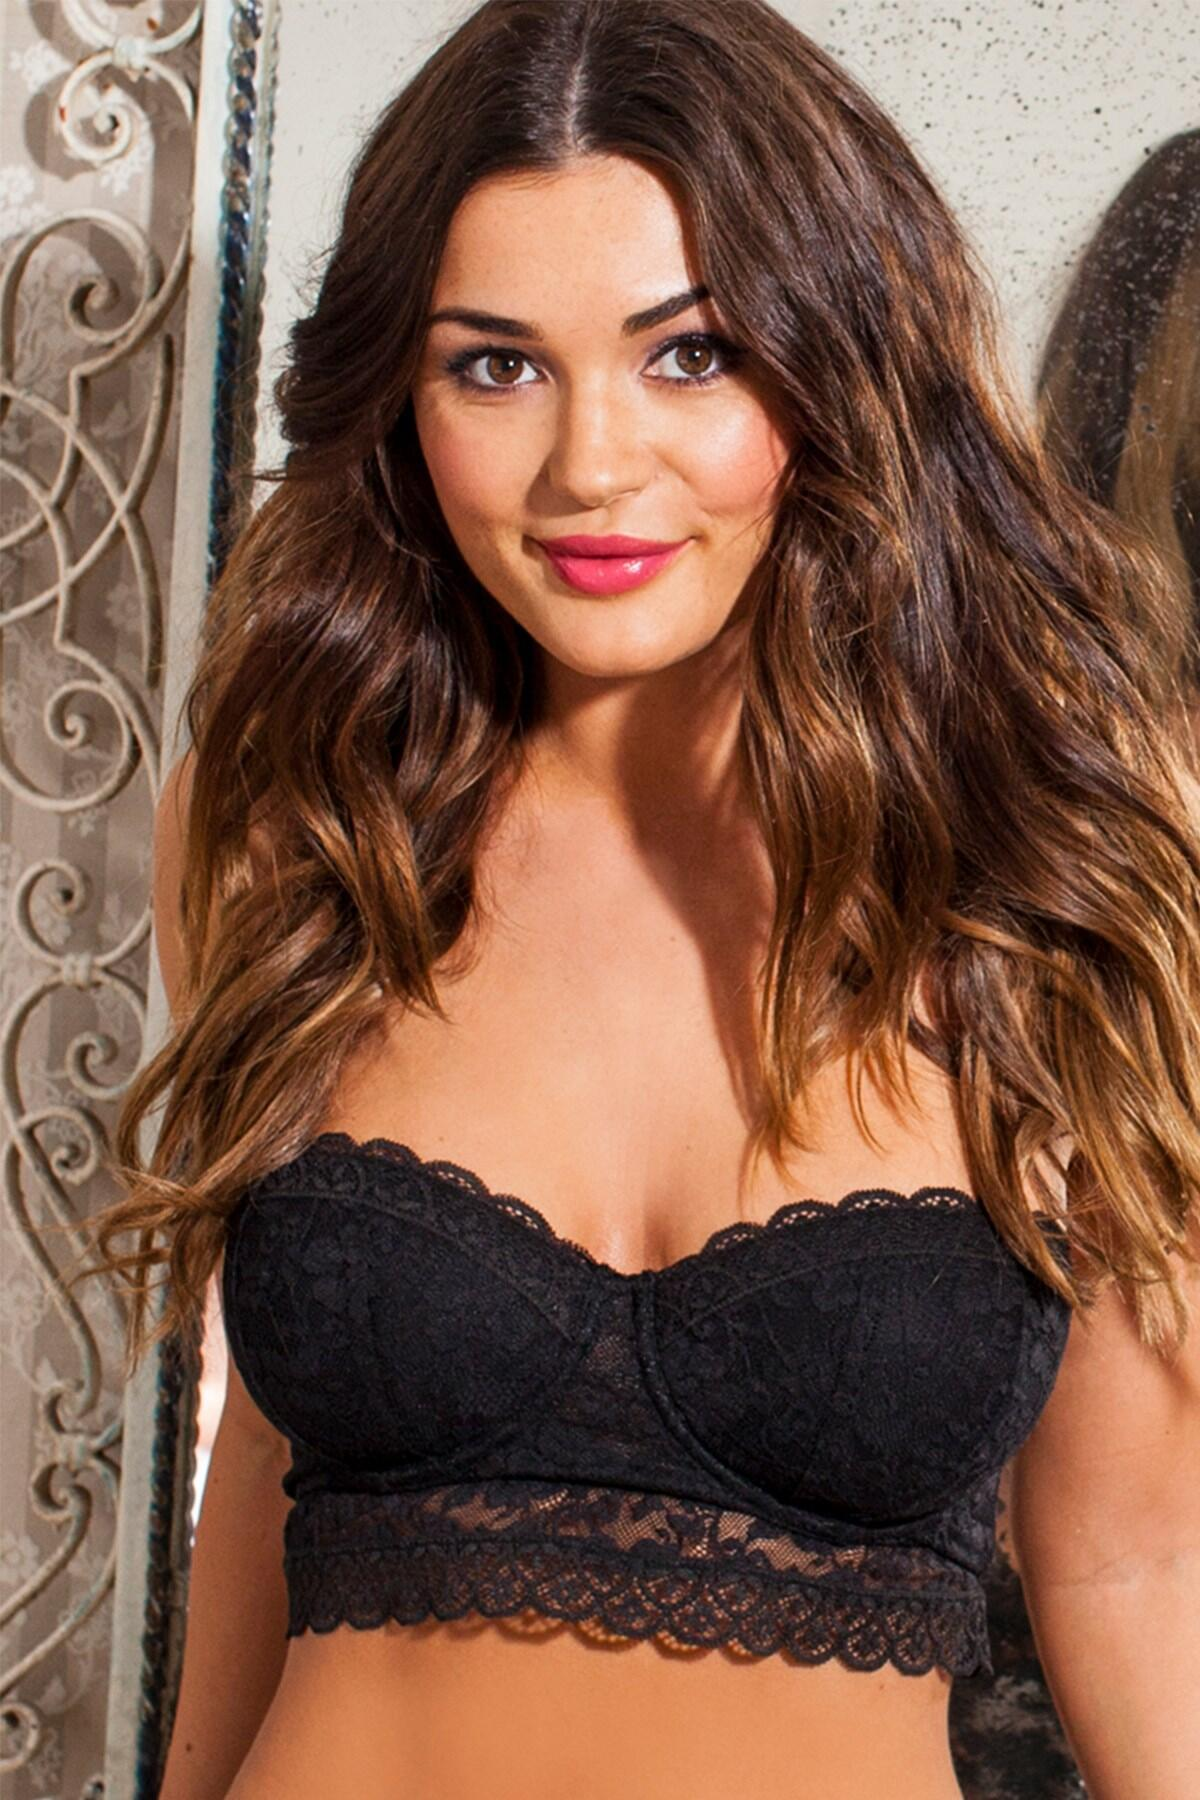 Rebel Strapless Longline Bra - Black